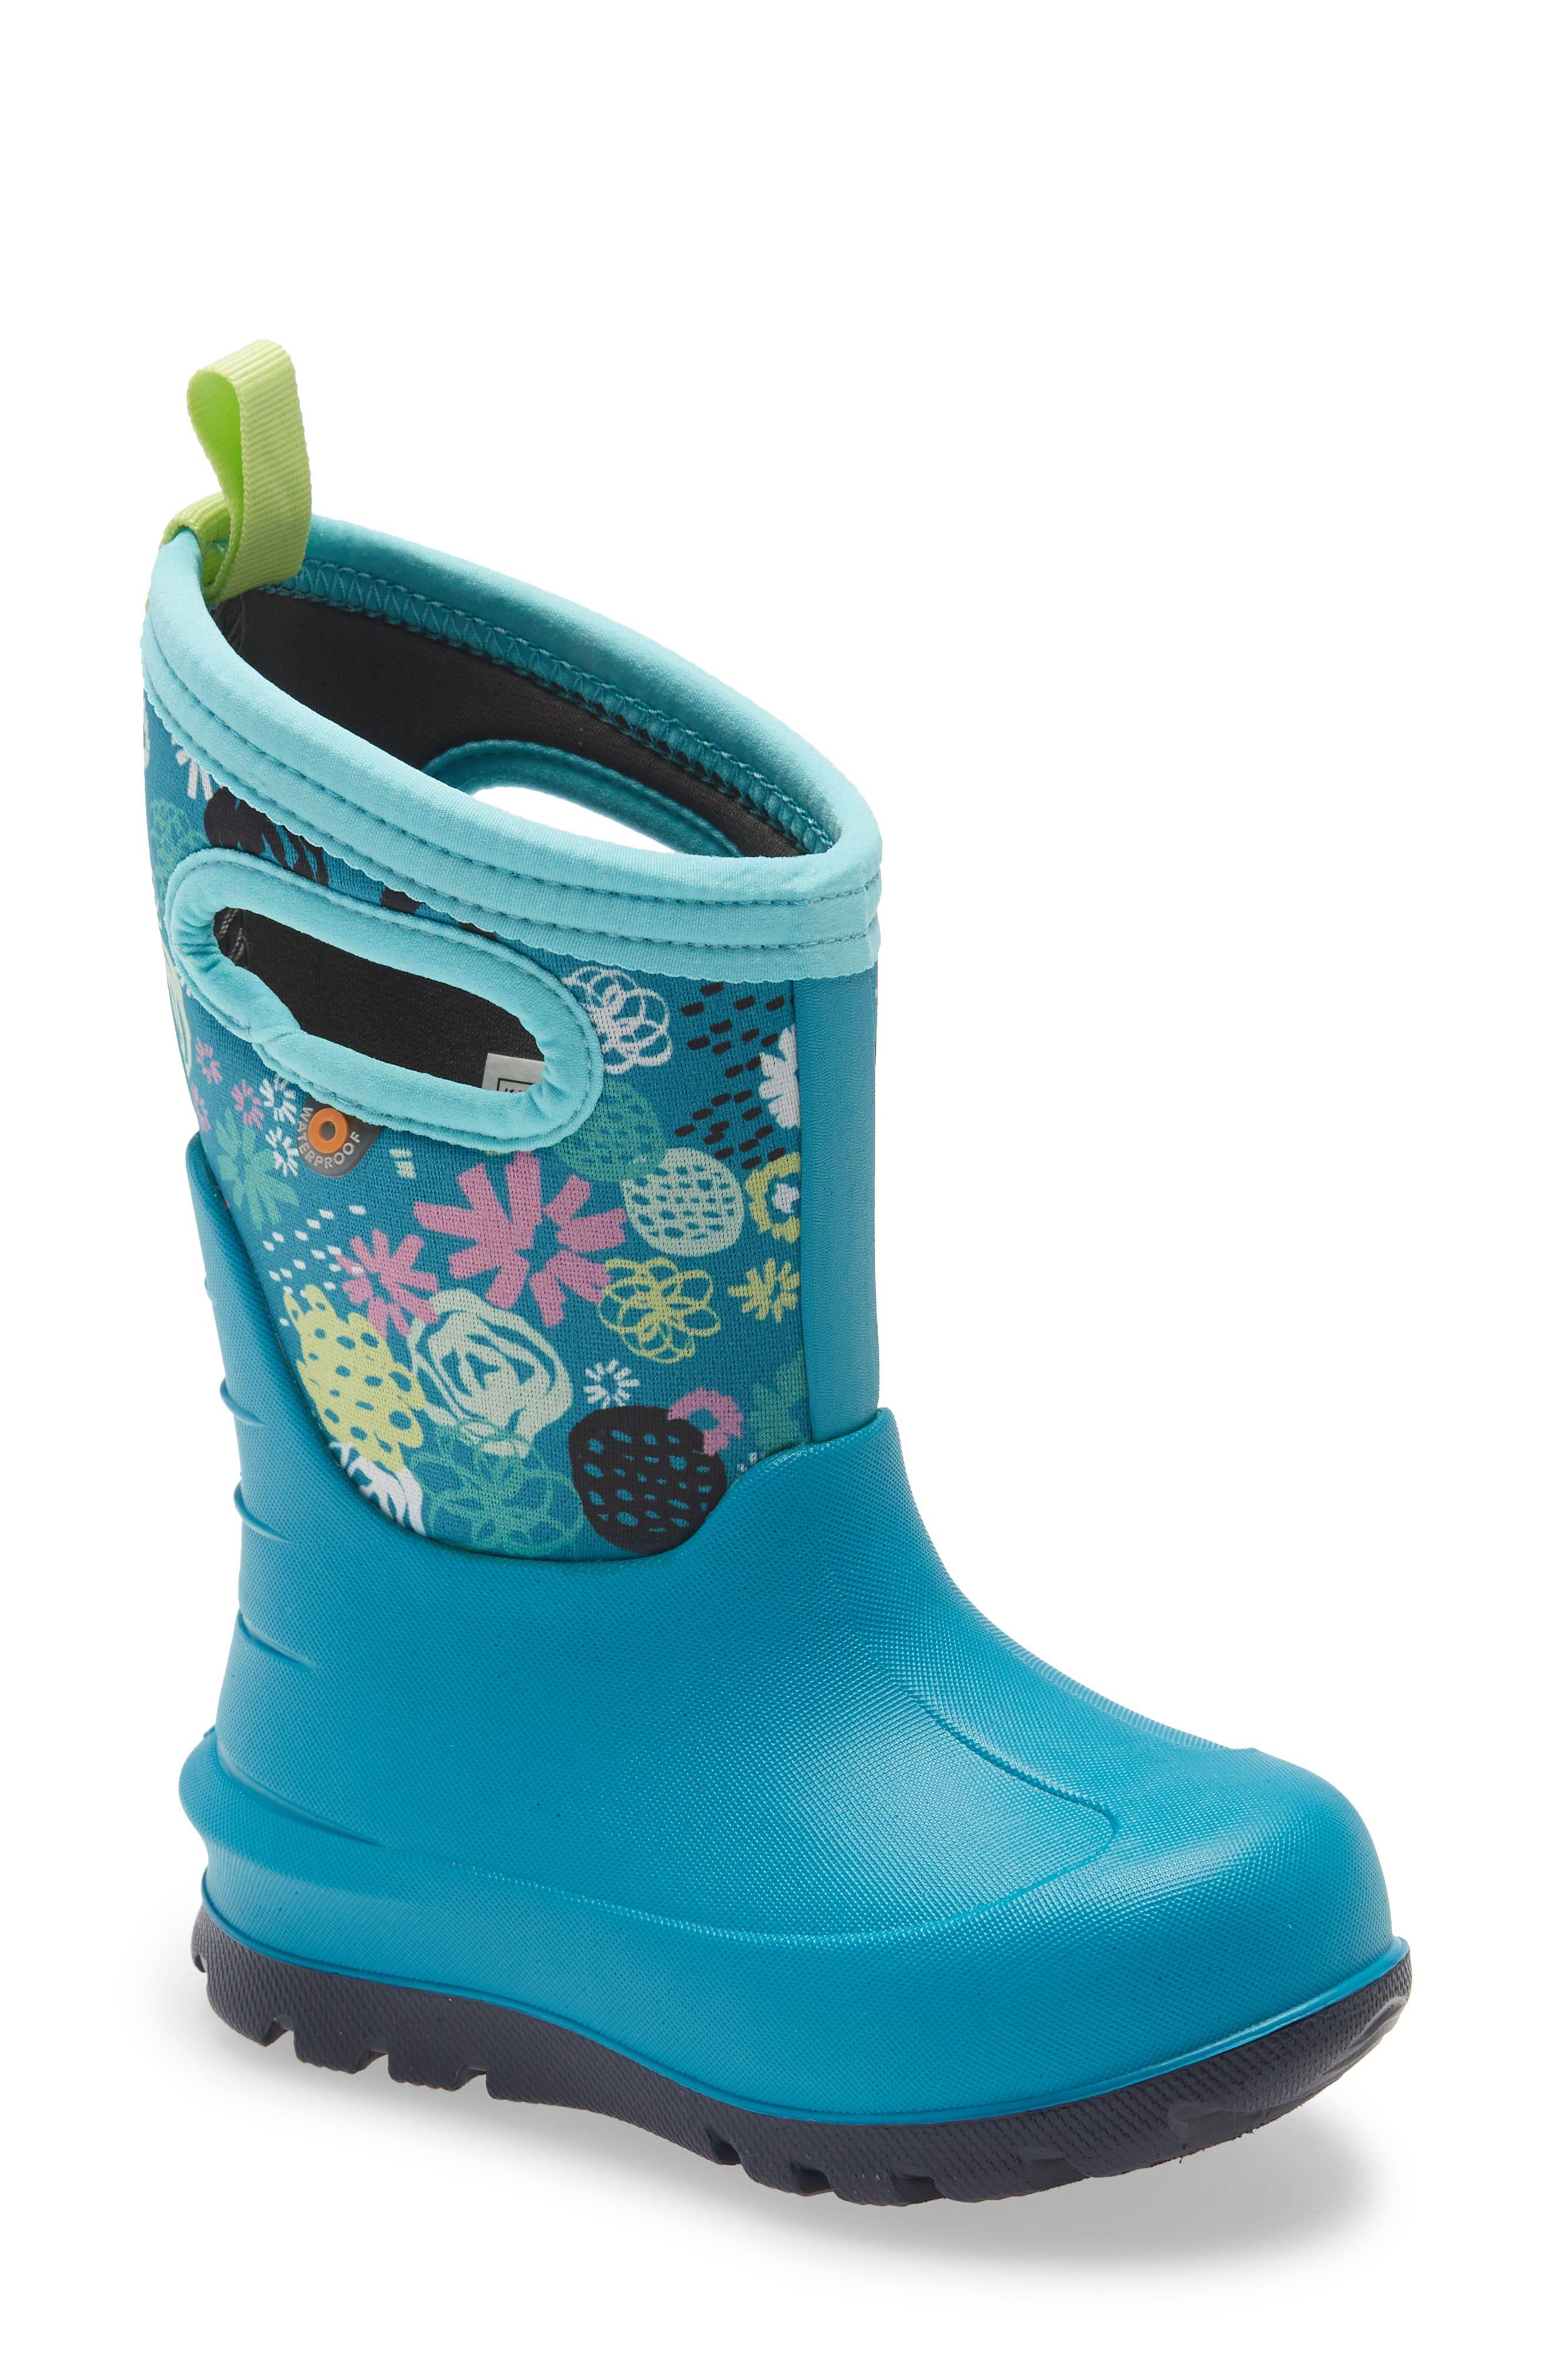 Bogs Girl's Bogs Neo Classic Garden Party Insulated Waterproof Boot, Size 1 M - Blue/green